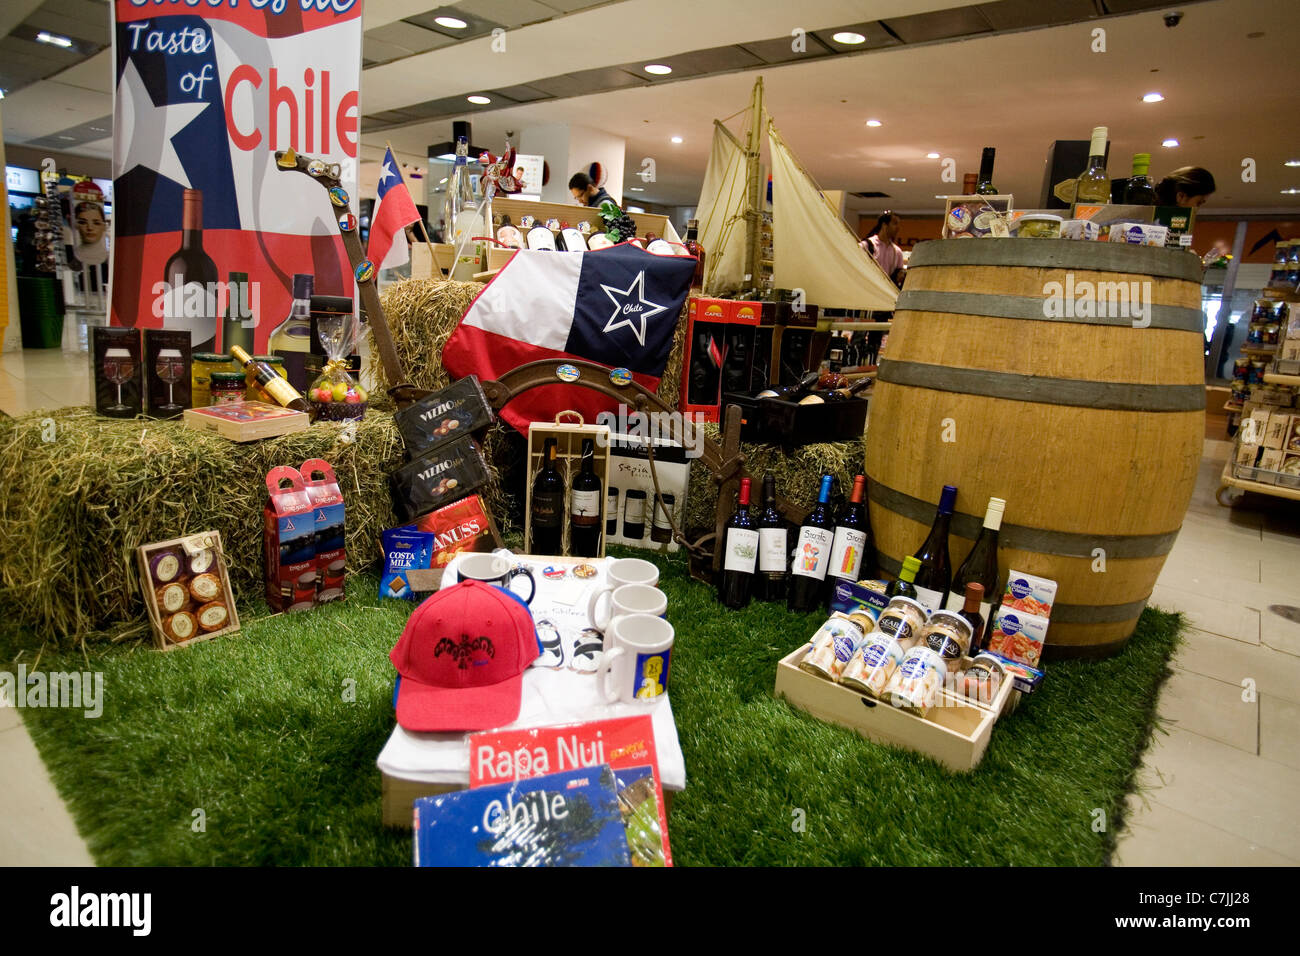 Products of Chile for sale at the airoport - Stock Image